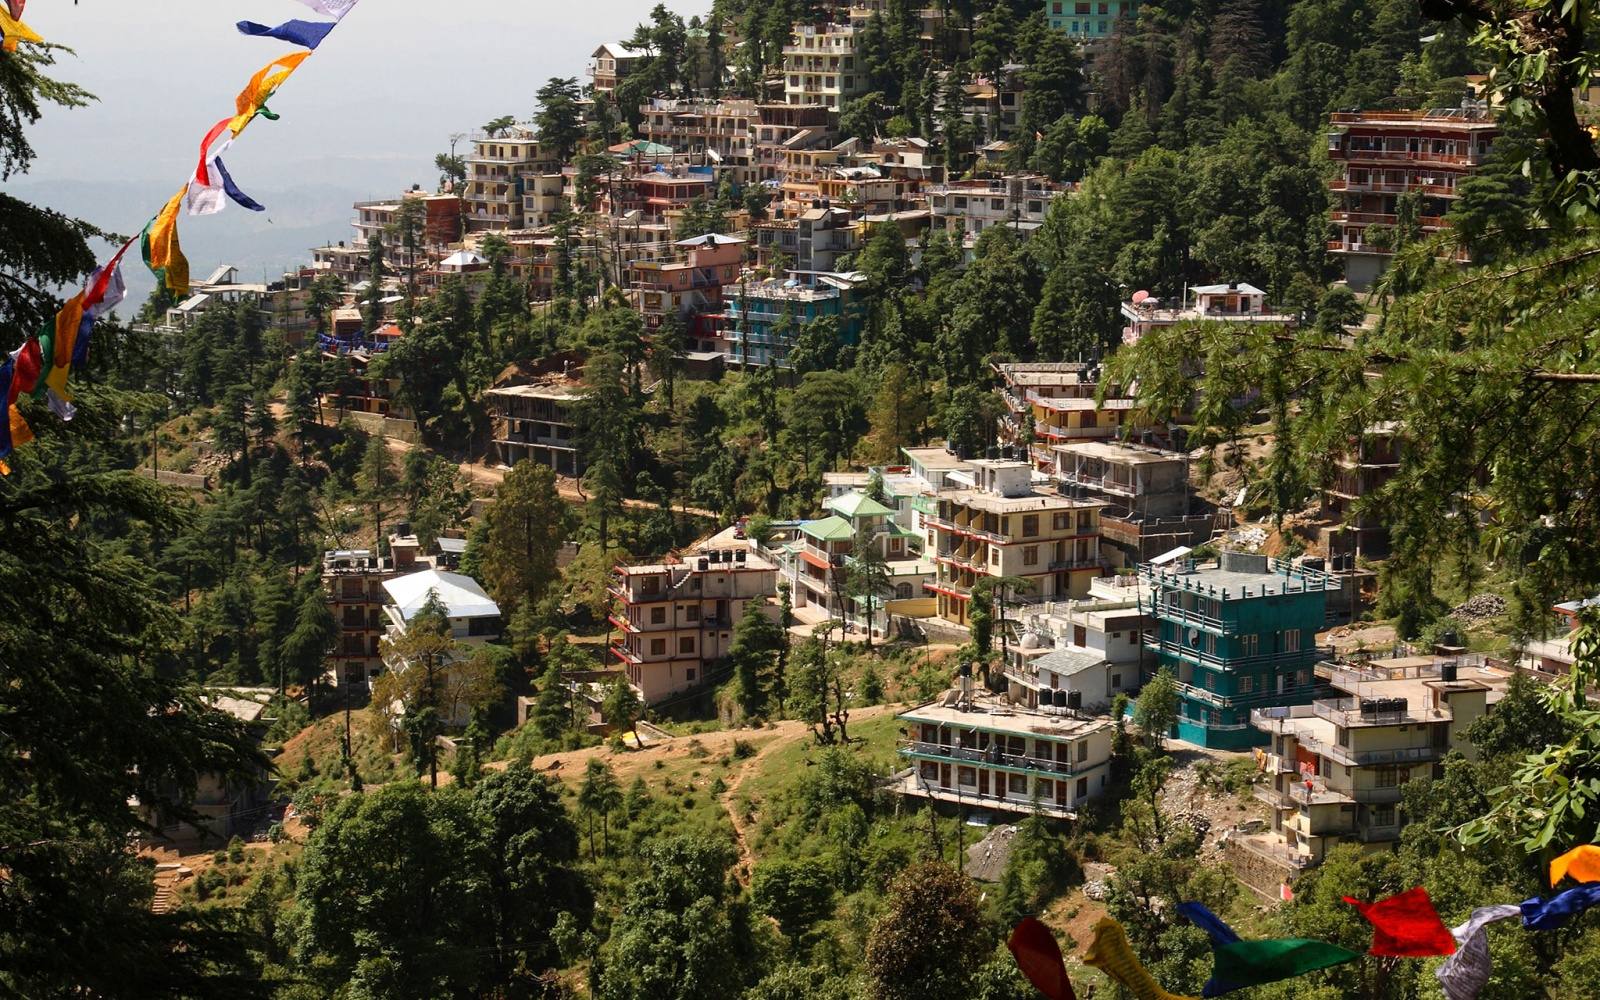 hillside buildings in Dharamsala, India